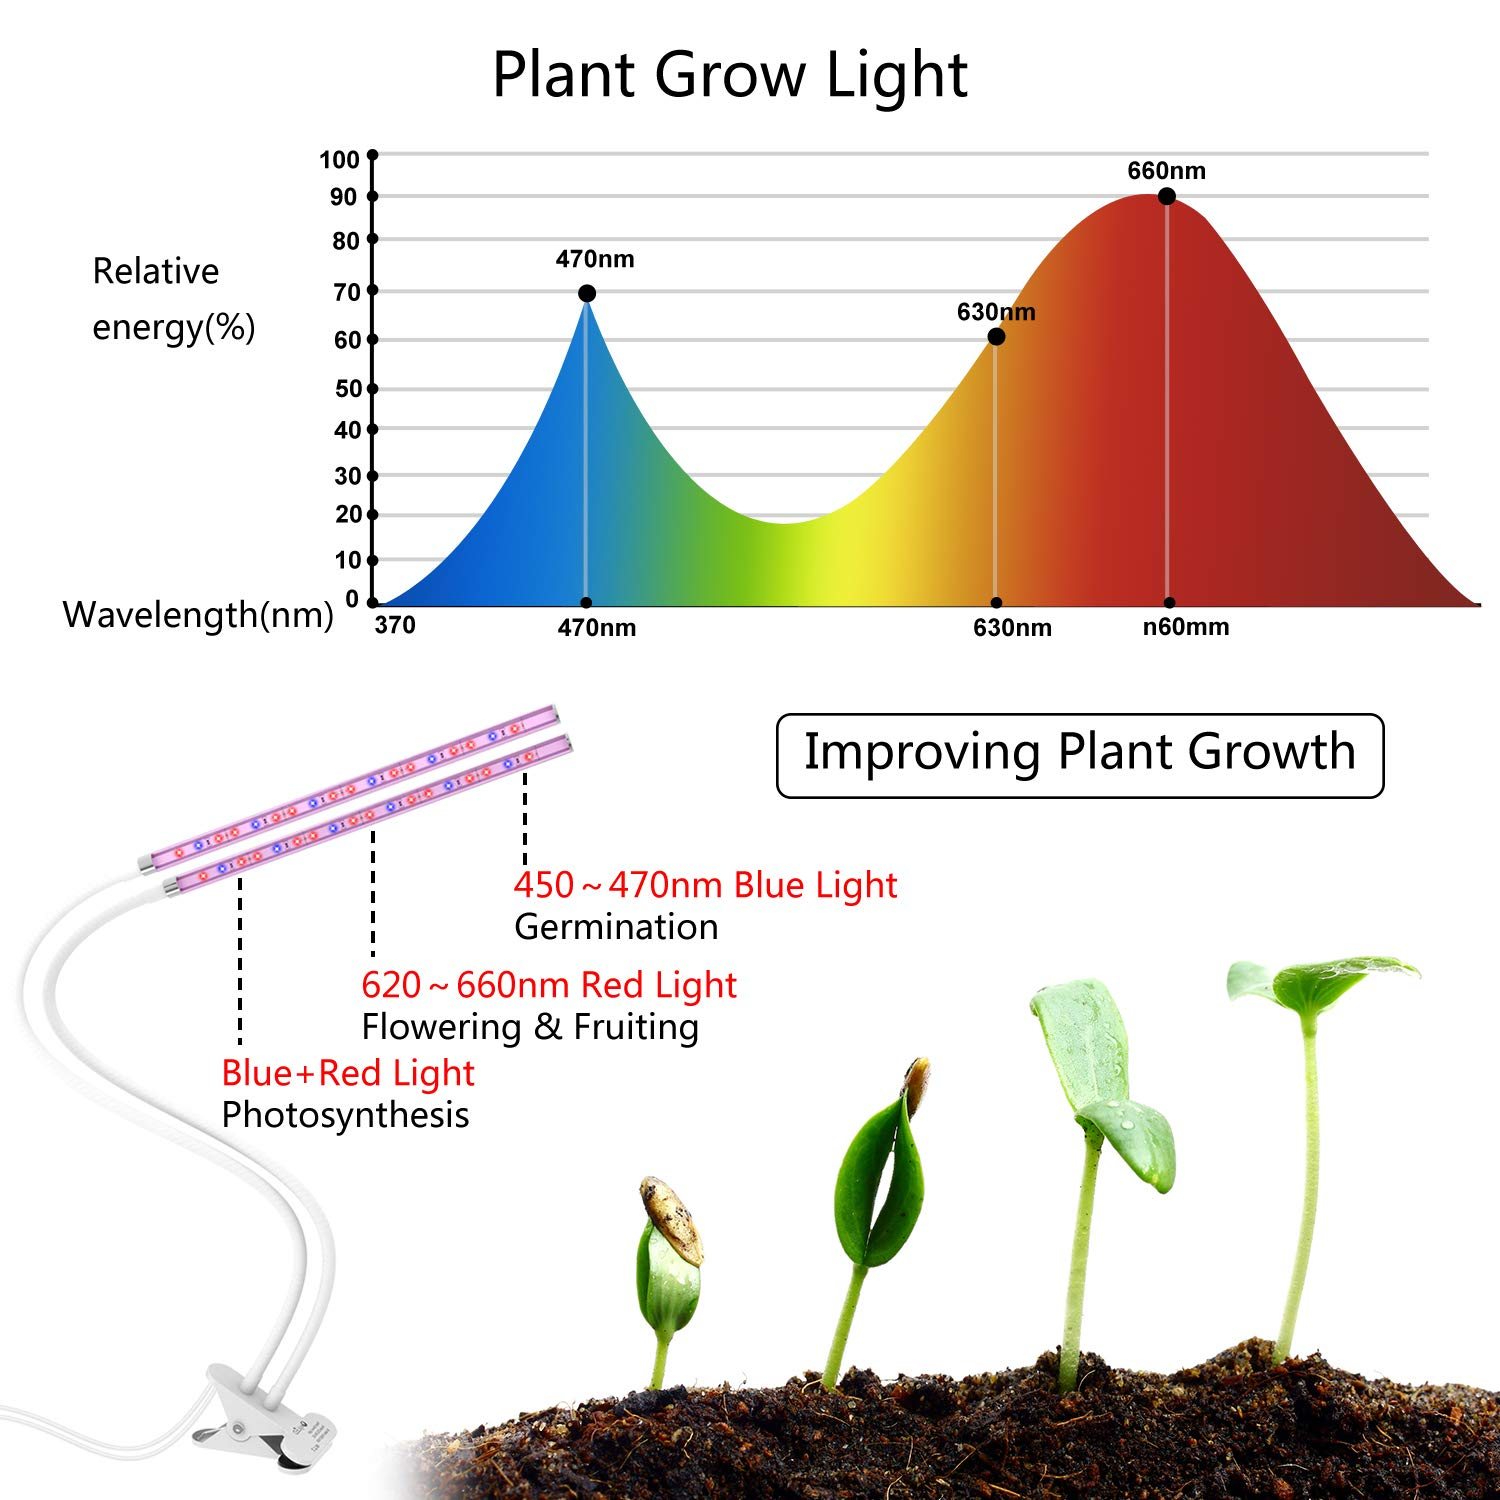 OxyLED Grow Light for Indoor Plants, Timing Function Dual Head Plant Light, 36 LED 5 Dimmable Levels Grow Lamp with Flexible Gooseneck for Hydroponics Greenhouse Gardening by OxyLED (Image #6)